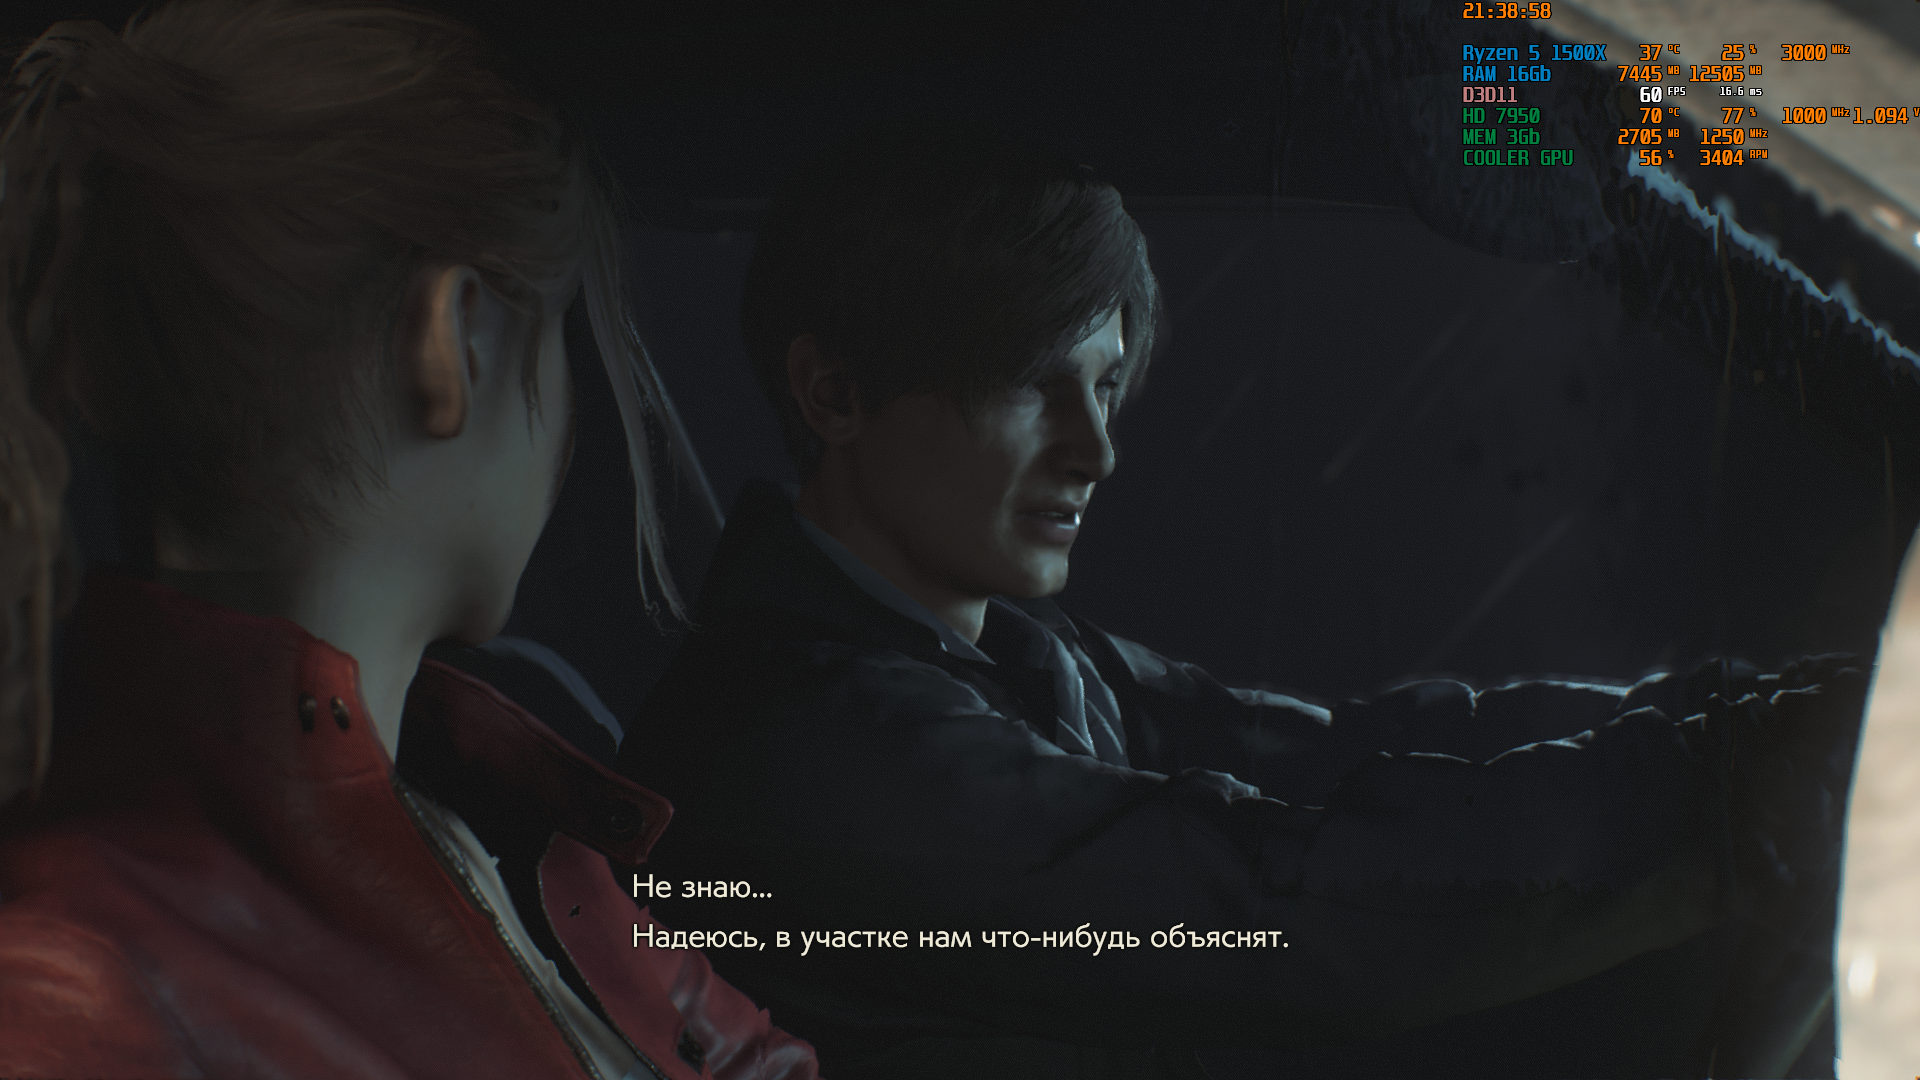 re2_2019_02_14_21_38_59_647.png - Resident Evil 2